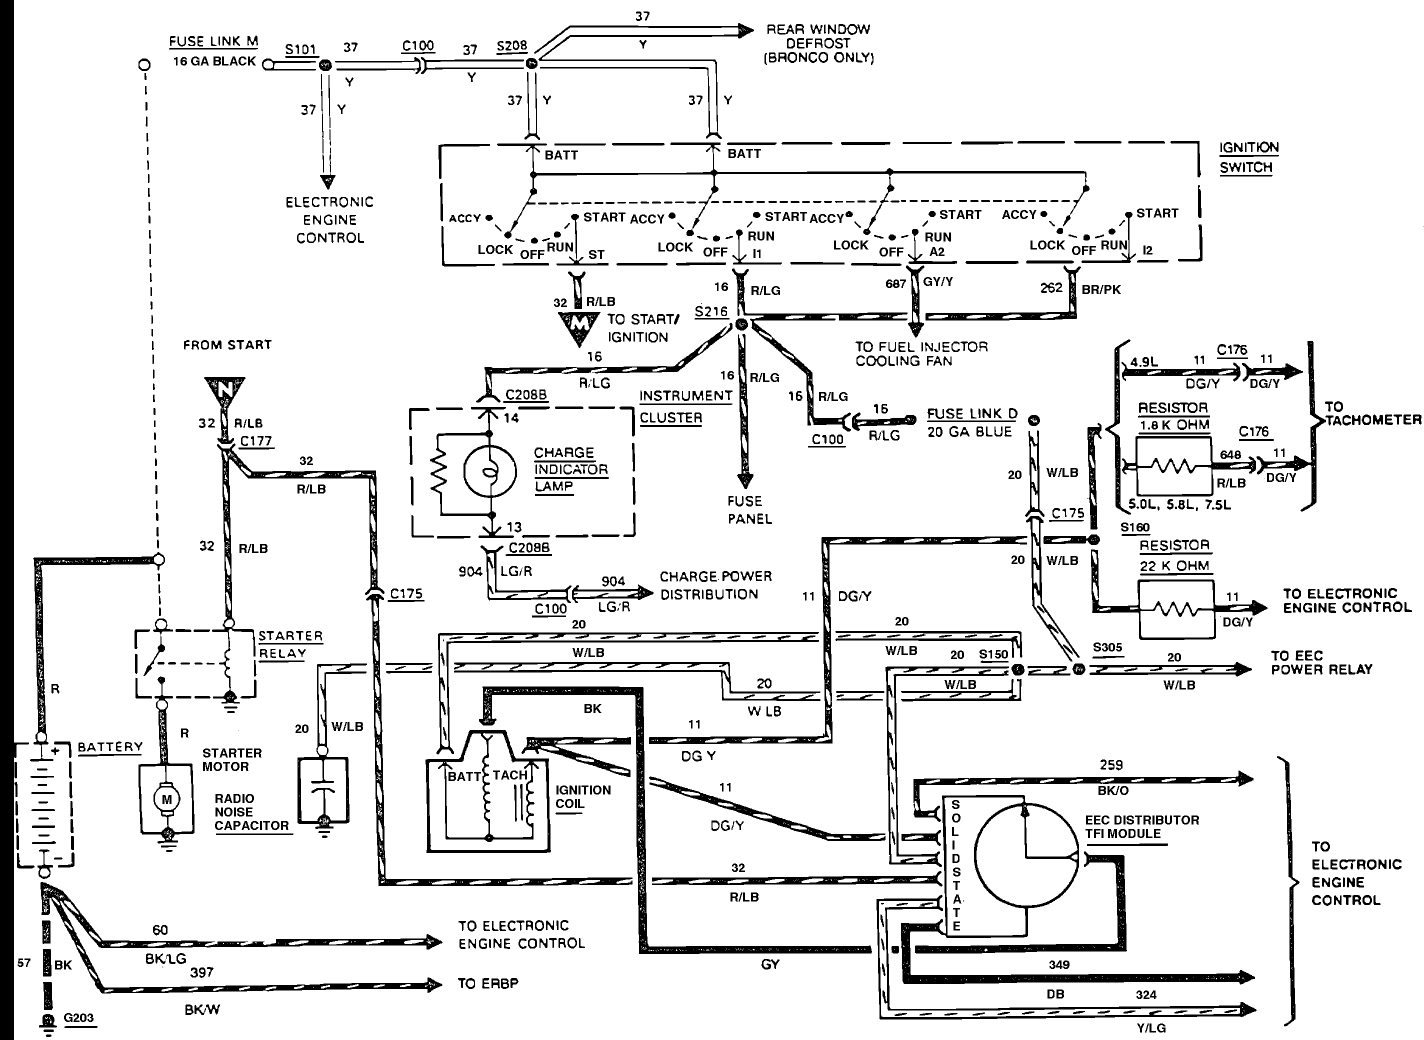 1986 Ford F 250 Diesel Wiring Diagram Wiring Diagrams Site Data A Data A Geasparquet It